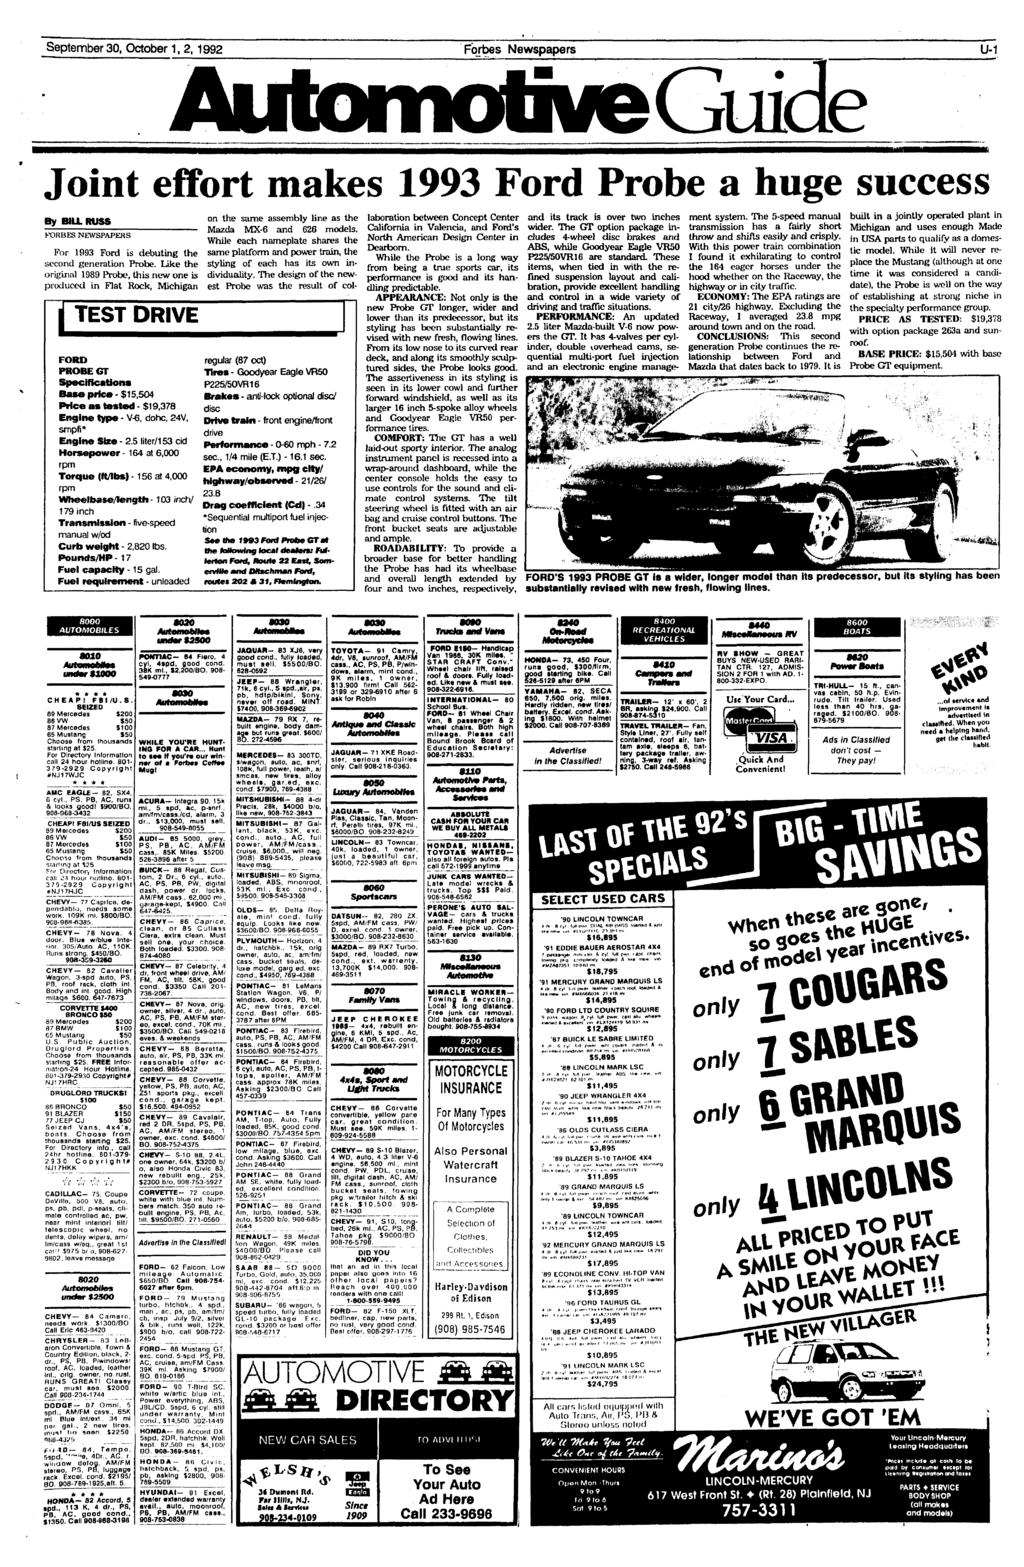 Thefestfield Record Pdf Reliant Single Handle Kitchen Faucet Diagram Of Parts For Models 4205 September 30 October 1 21992 Forbes Newspapers U